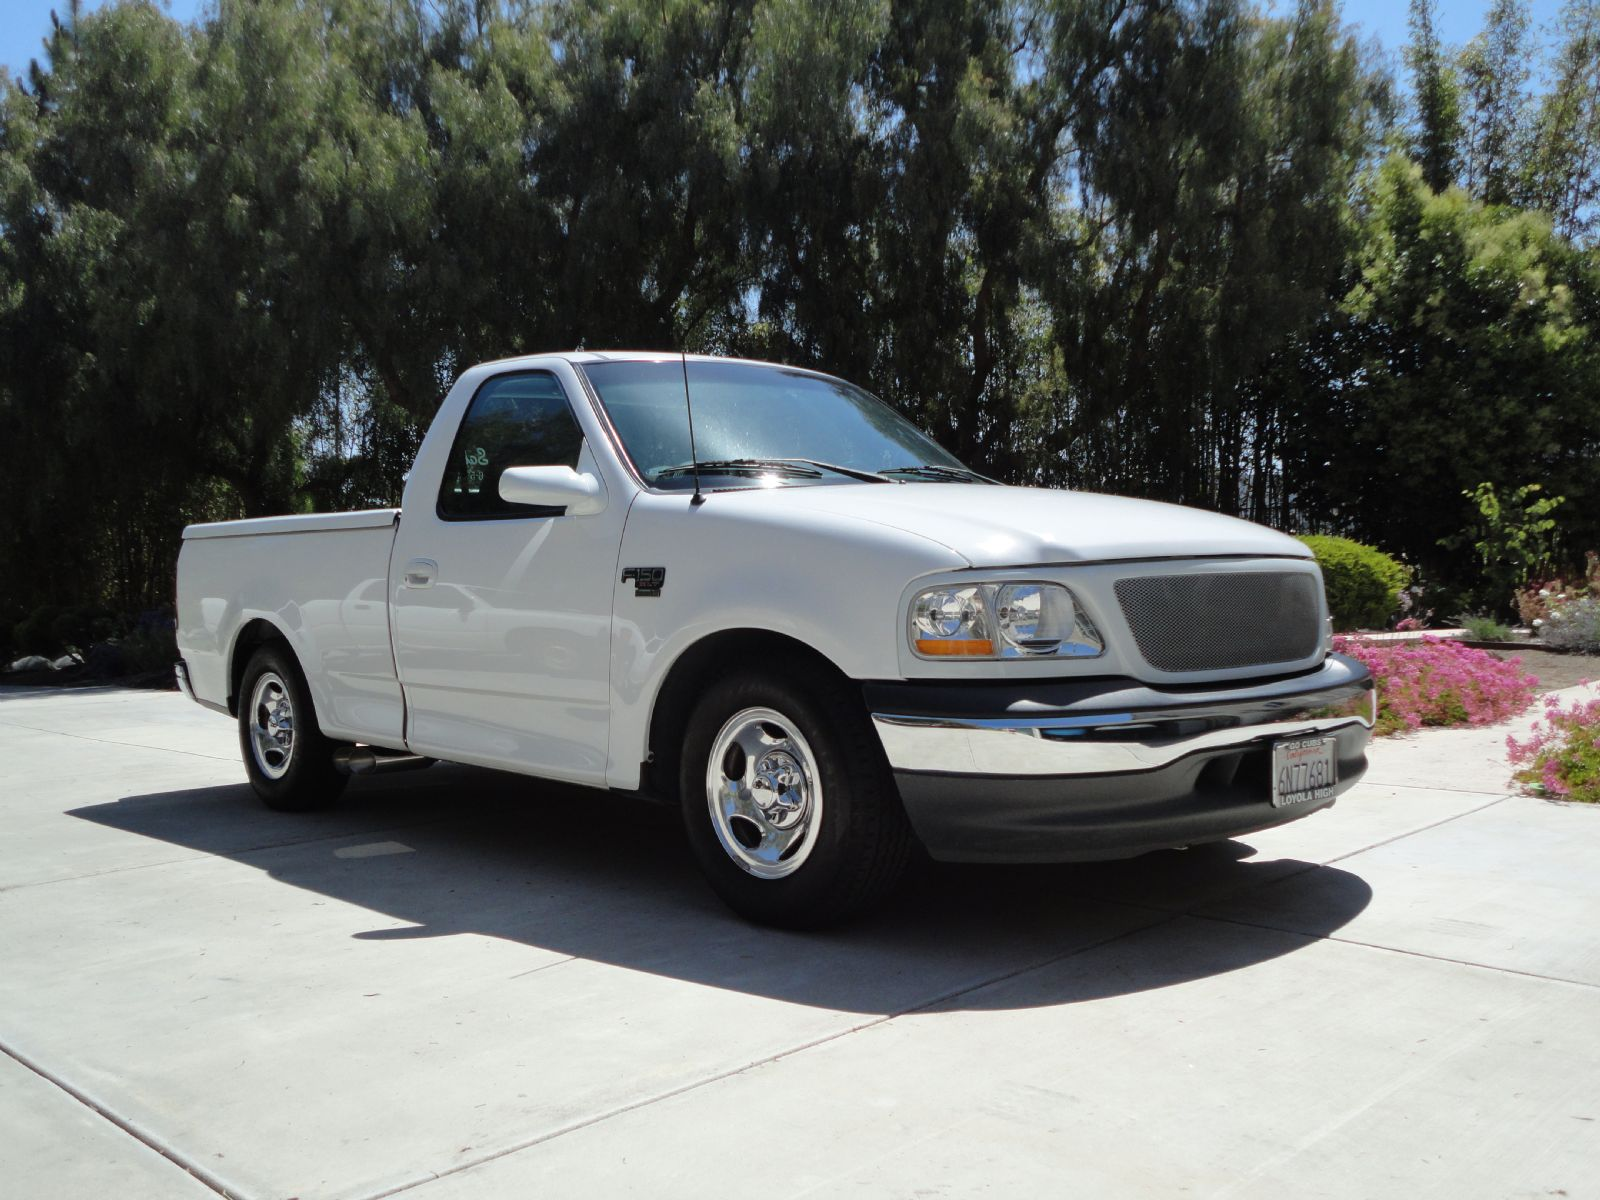 ford f 150 ranger xlt html in ageqynygelyx github com source code rh searchcode com 2001 ford f150 manual download 2000 ford f 150 manual